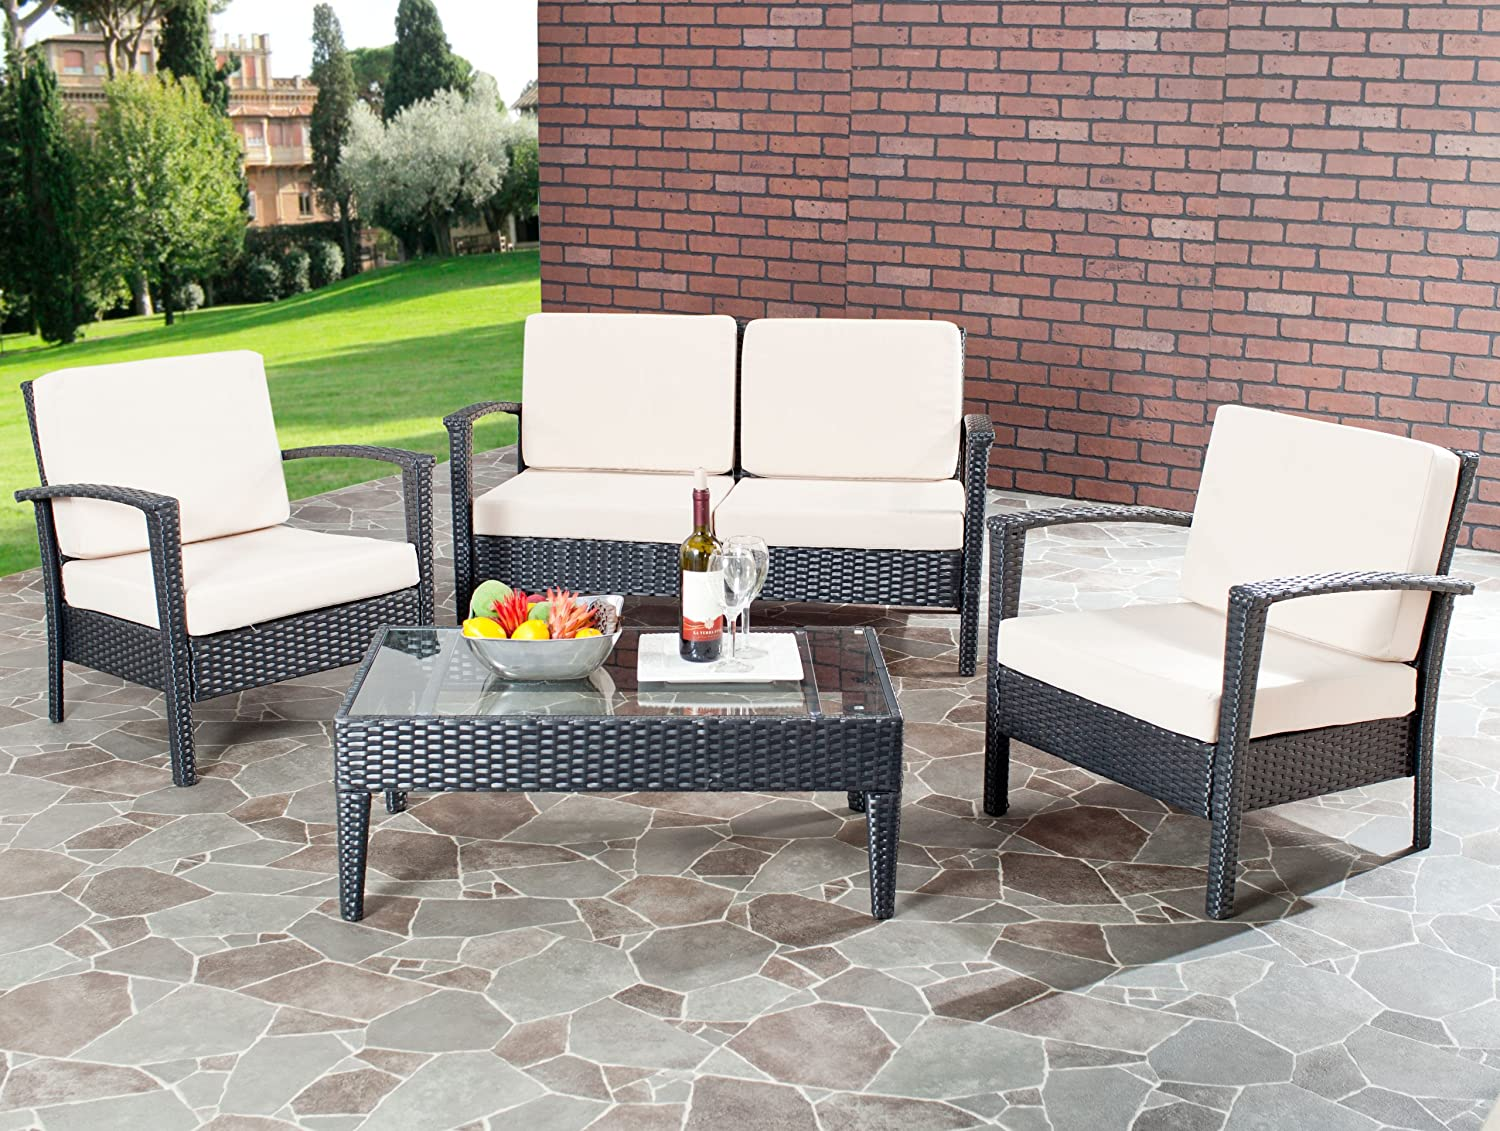 Amazoncom Safavieh Home Collection Glass Top Piece Patio - Wicker patio furniture sets